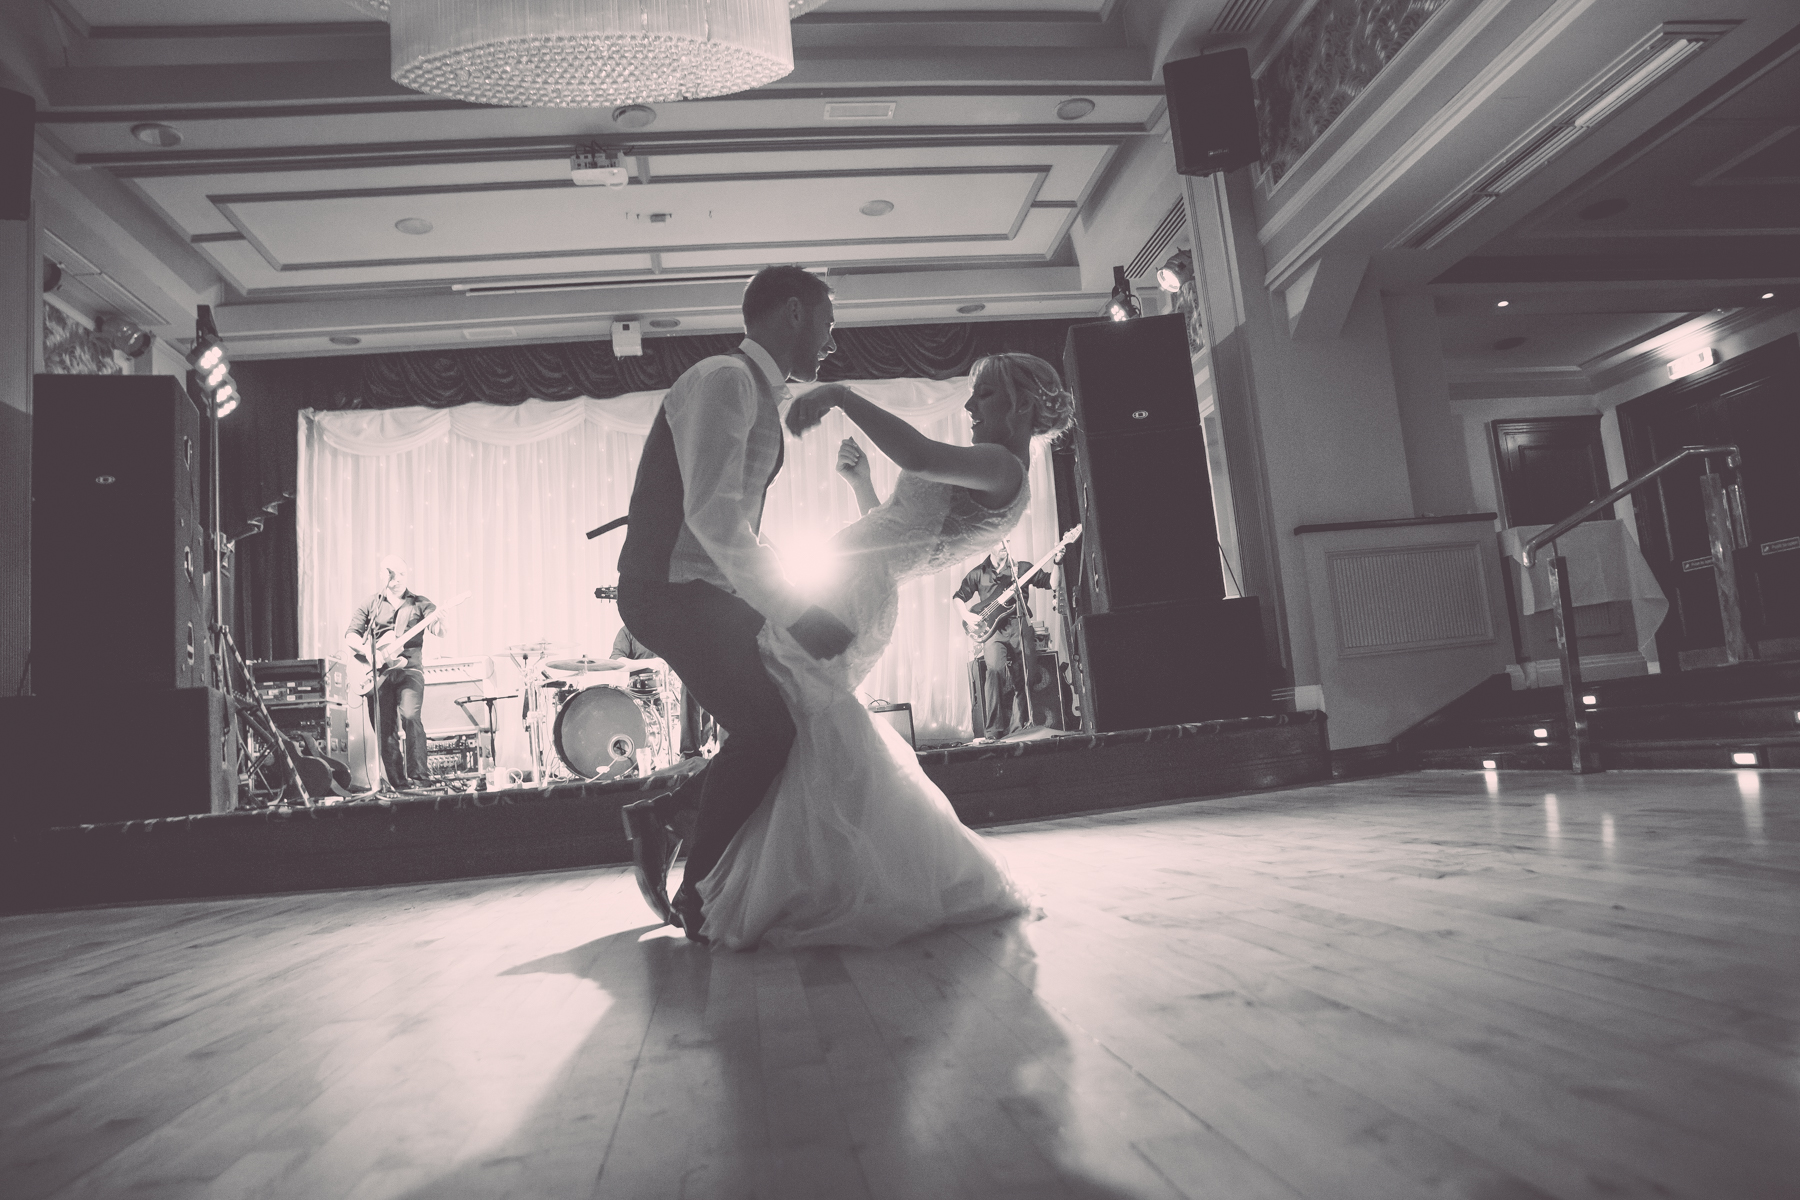 MAGS & DAVE dancing on their wedding night